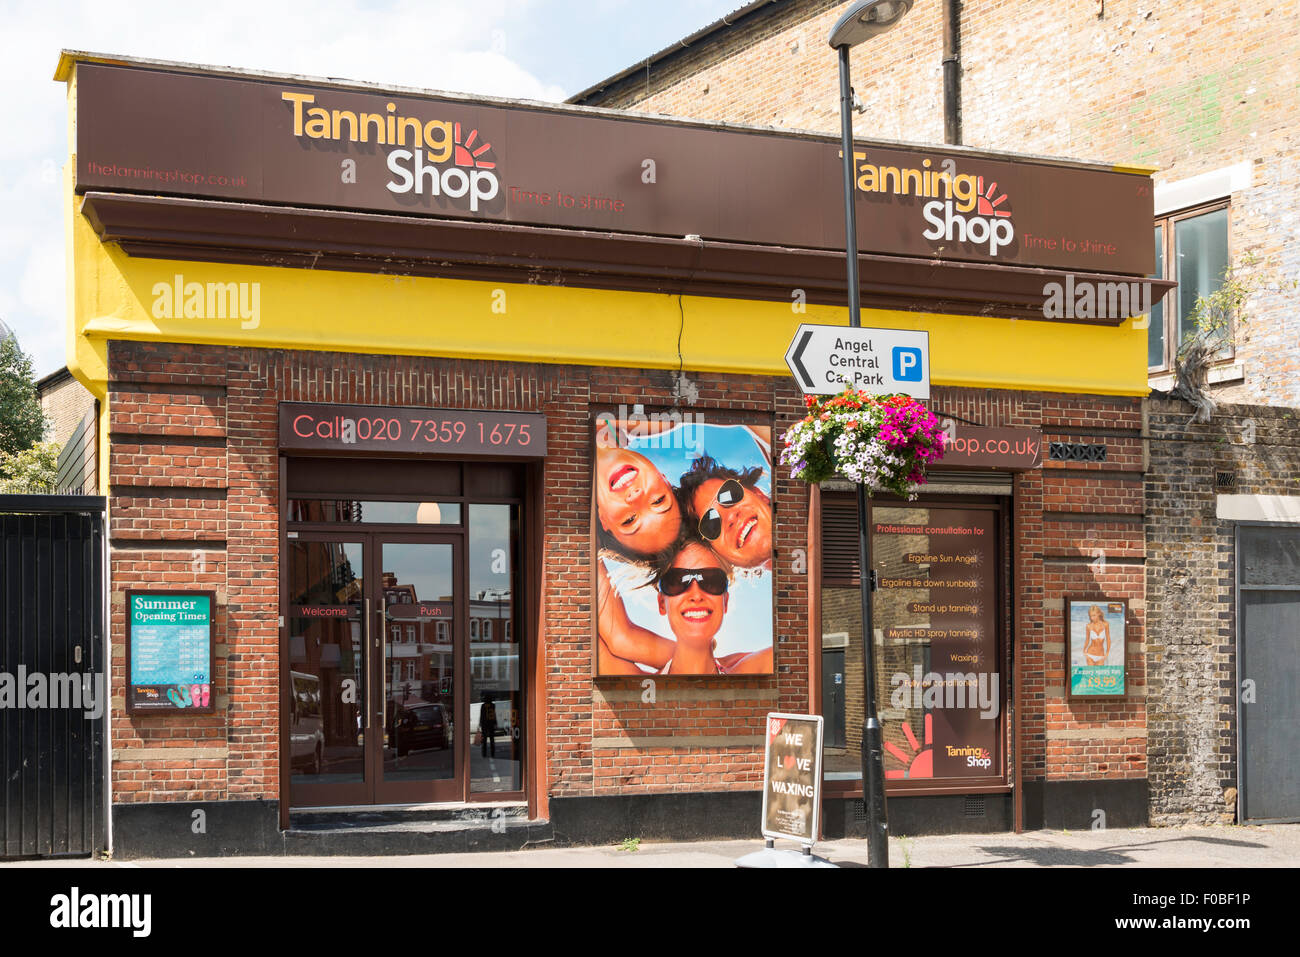 The Tanning Shop, Parkfield Street, Islington, London Borough of Islington, London, England, United Kingdom - Stock Image